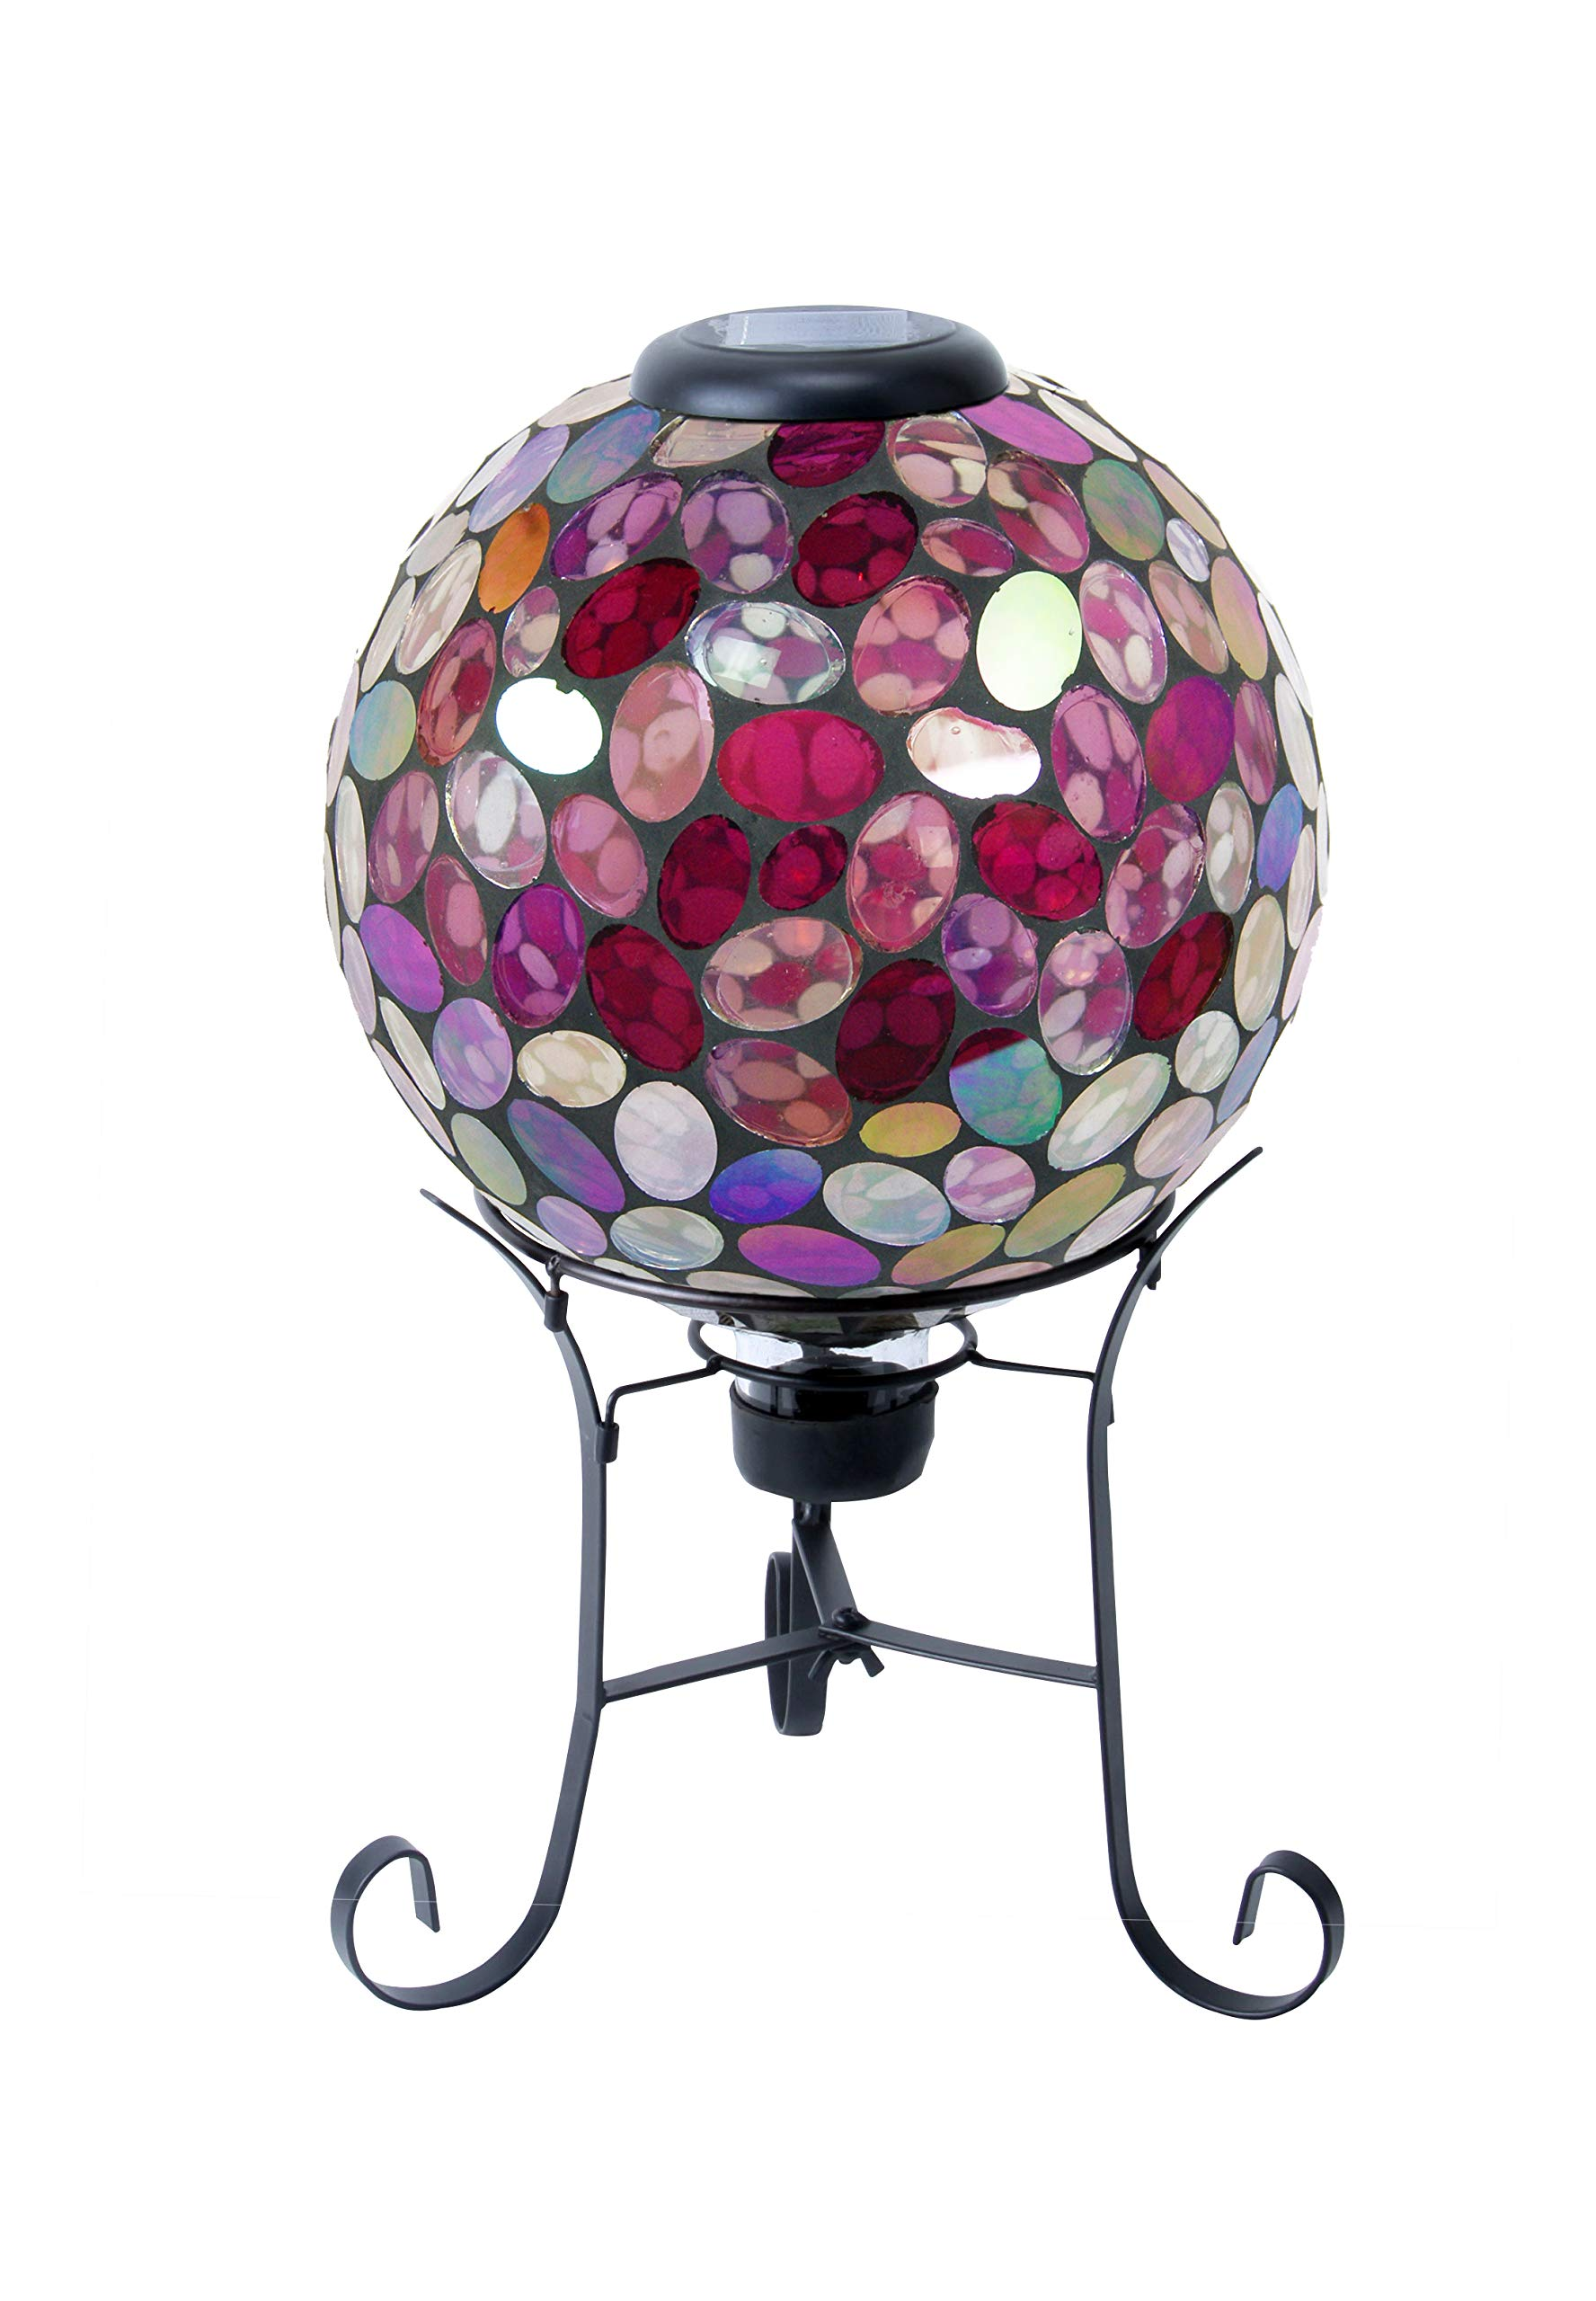 Alpine Corporation Solar Gazing Globe with LED Lights - Mosaic Sphere with Metal Stand - Outdoor Yard Art Decor - Violet - 10'' x 10'' x 17''